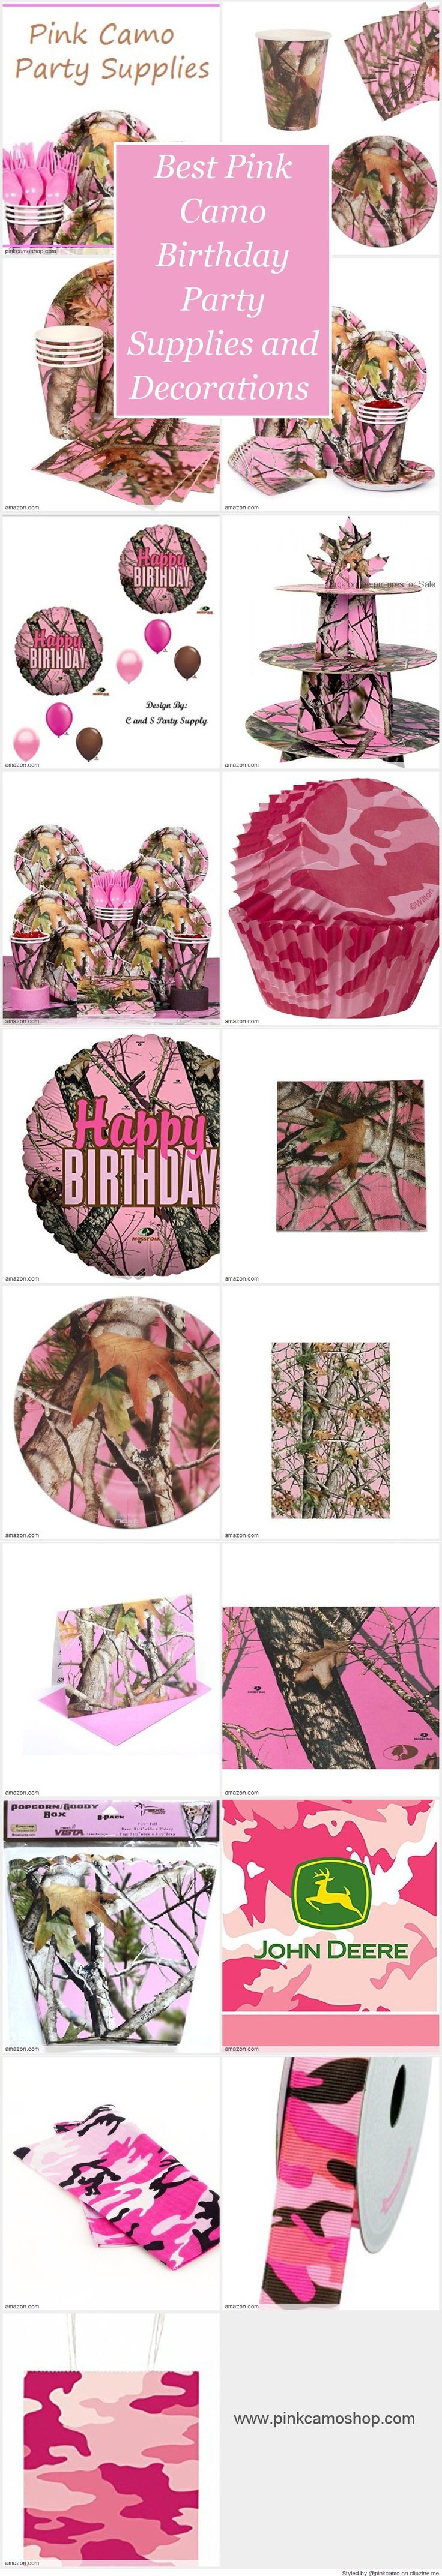 Best Pink Camo Birthday Party Supplies and Decorations